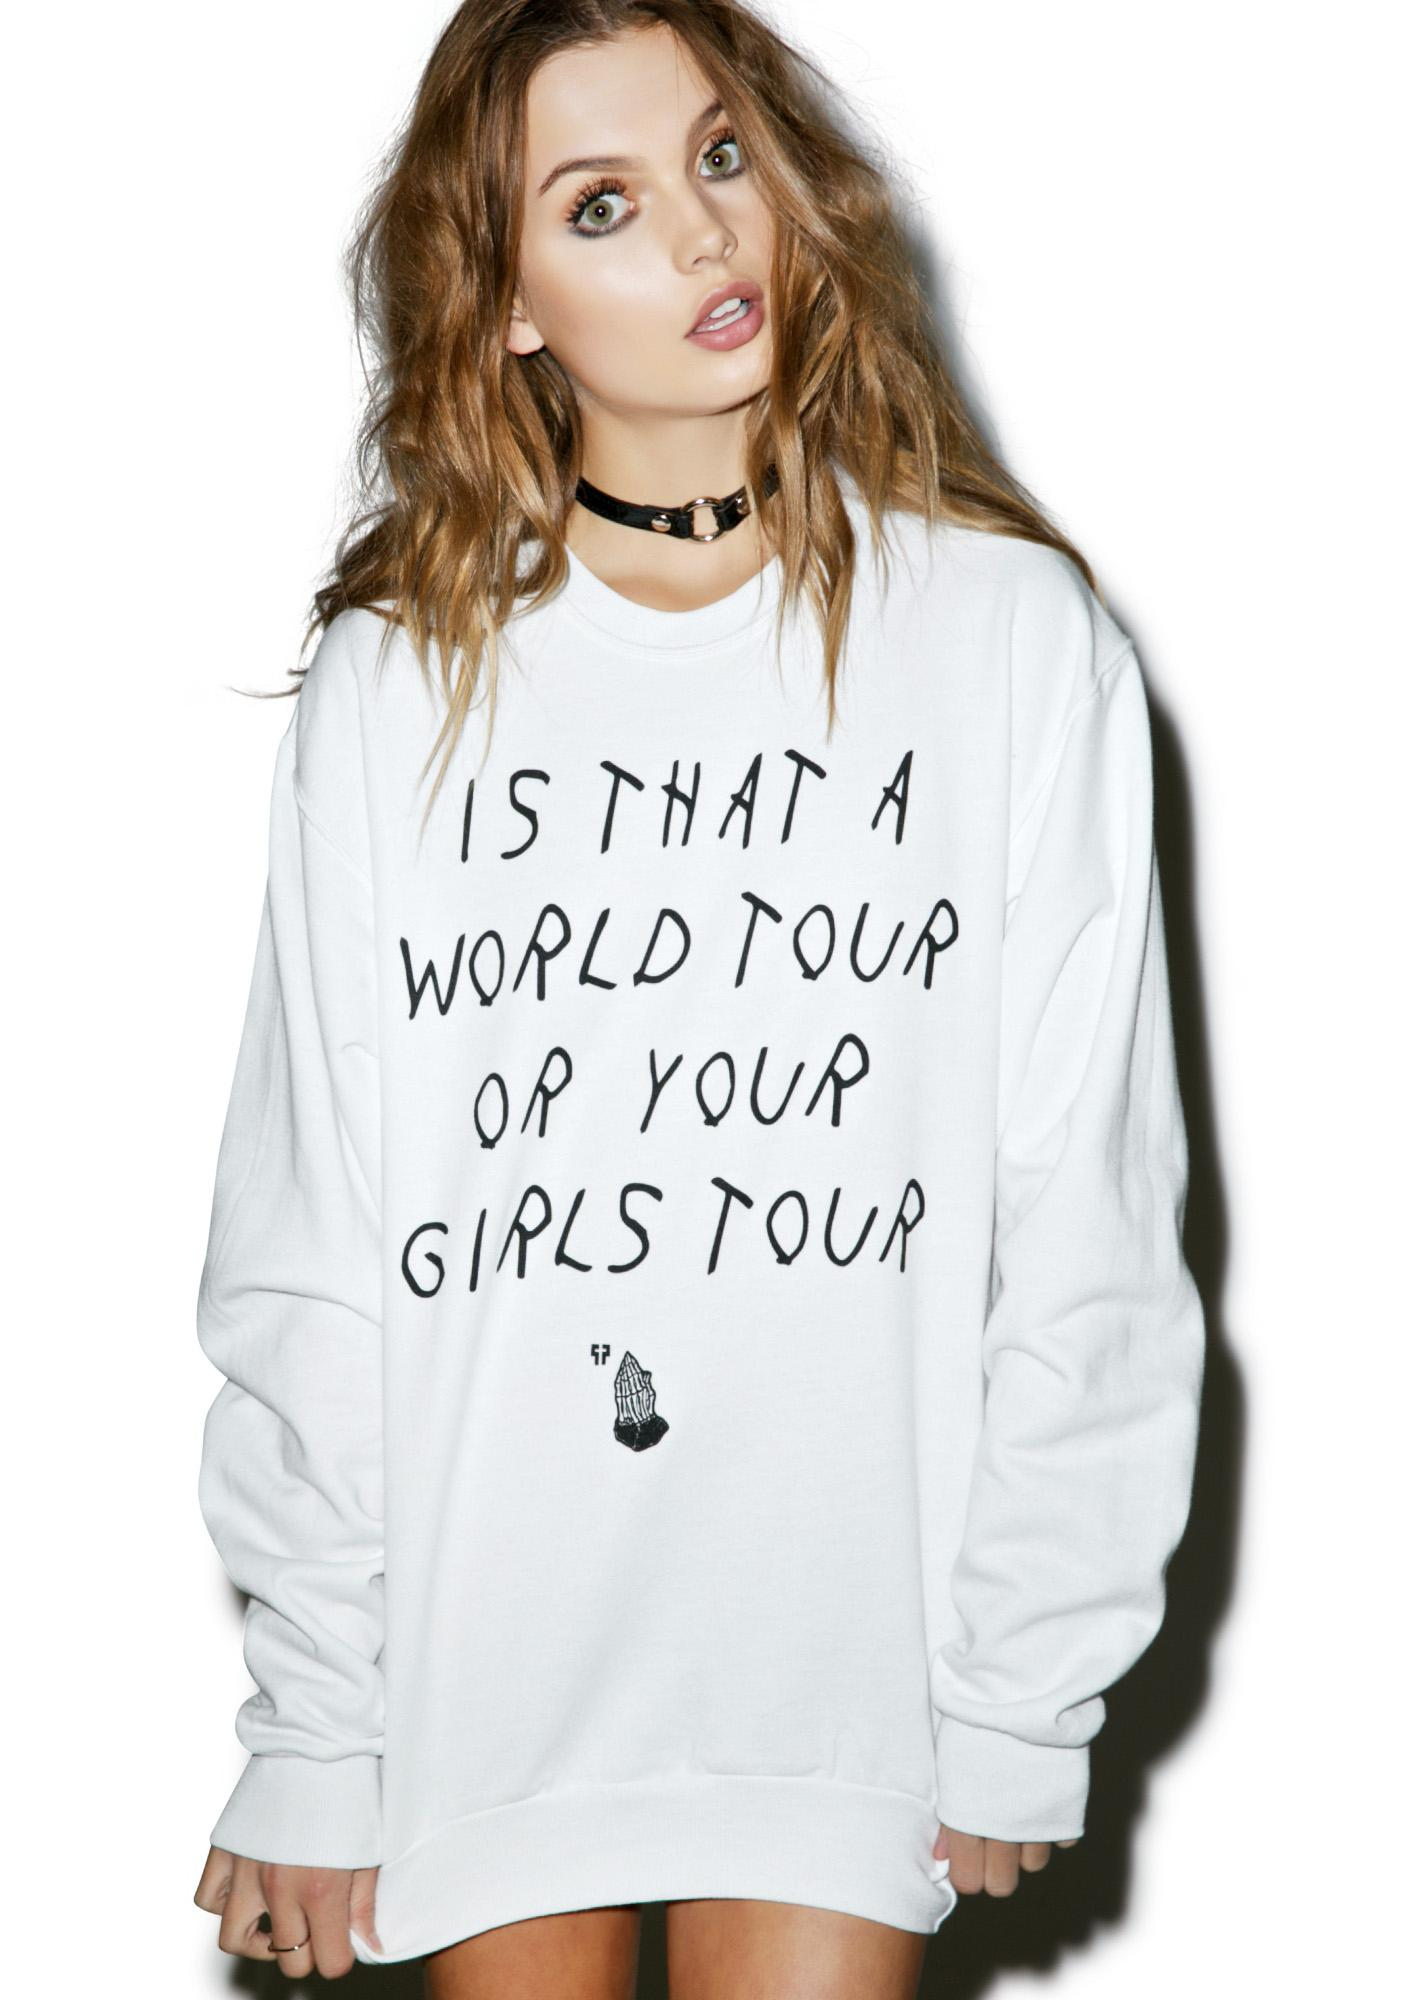 Petals and Peacocks Your Girl's Tour Sweatshirt